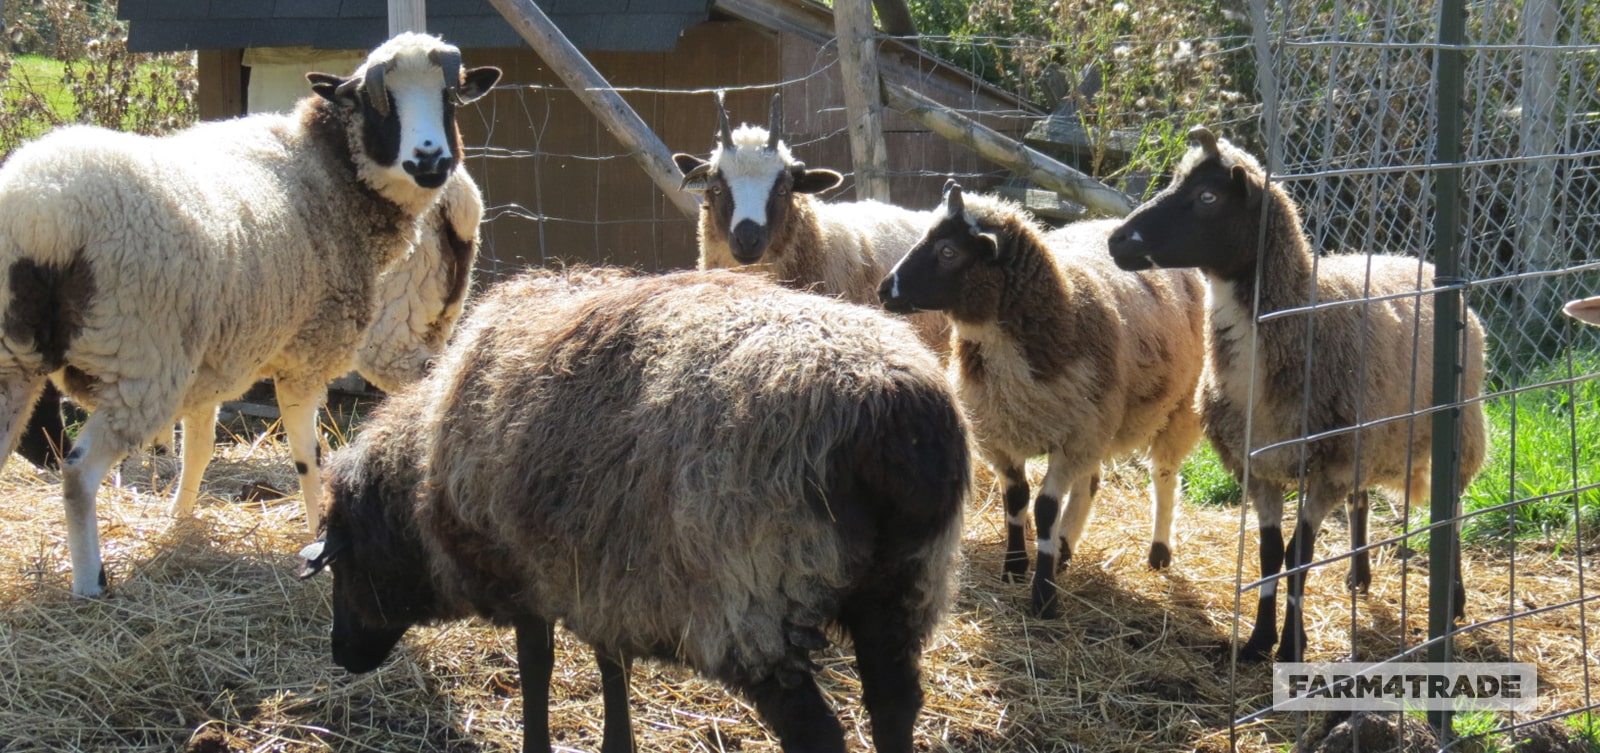 Farm4Trade-Karakul sheep and its association with the fashion industry